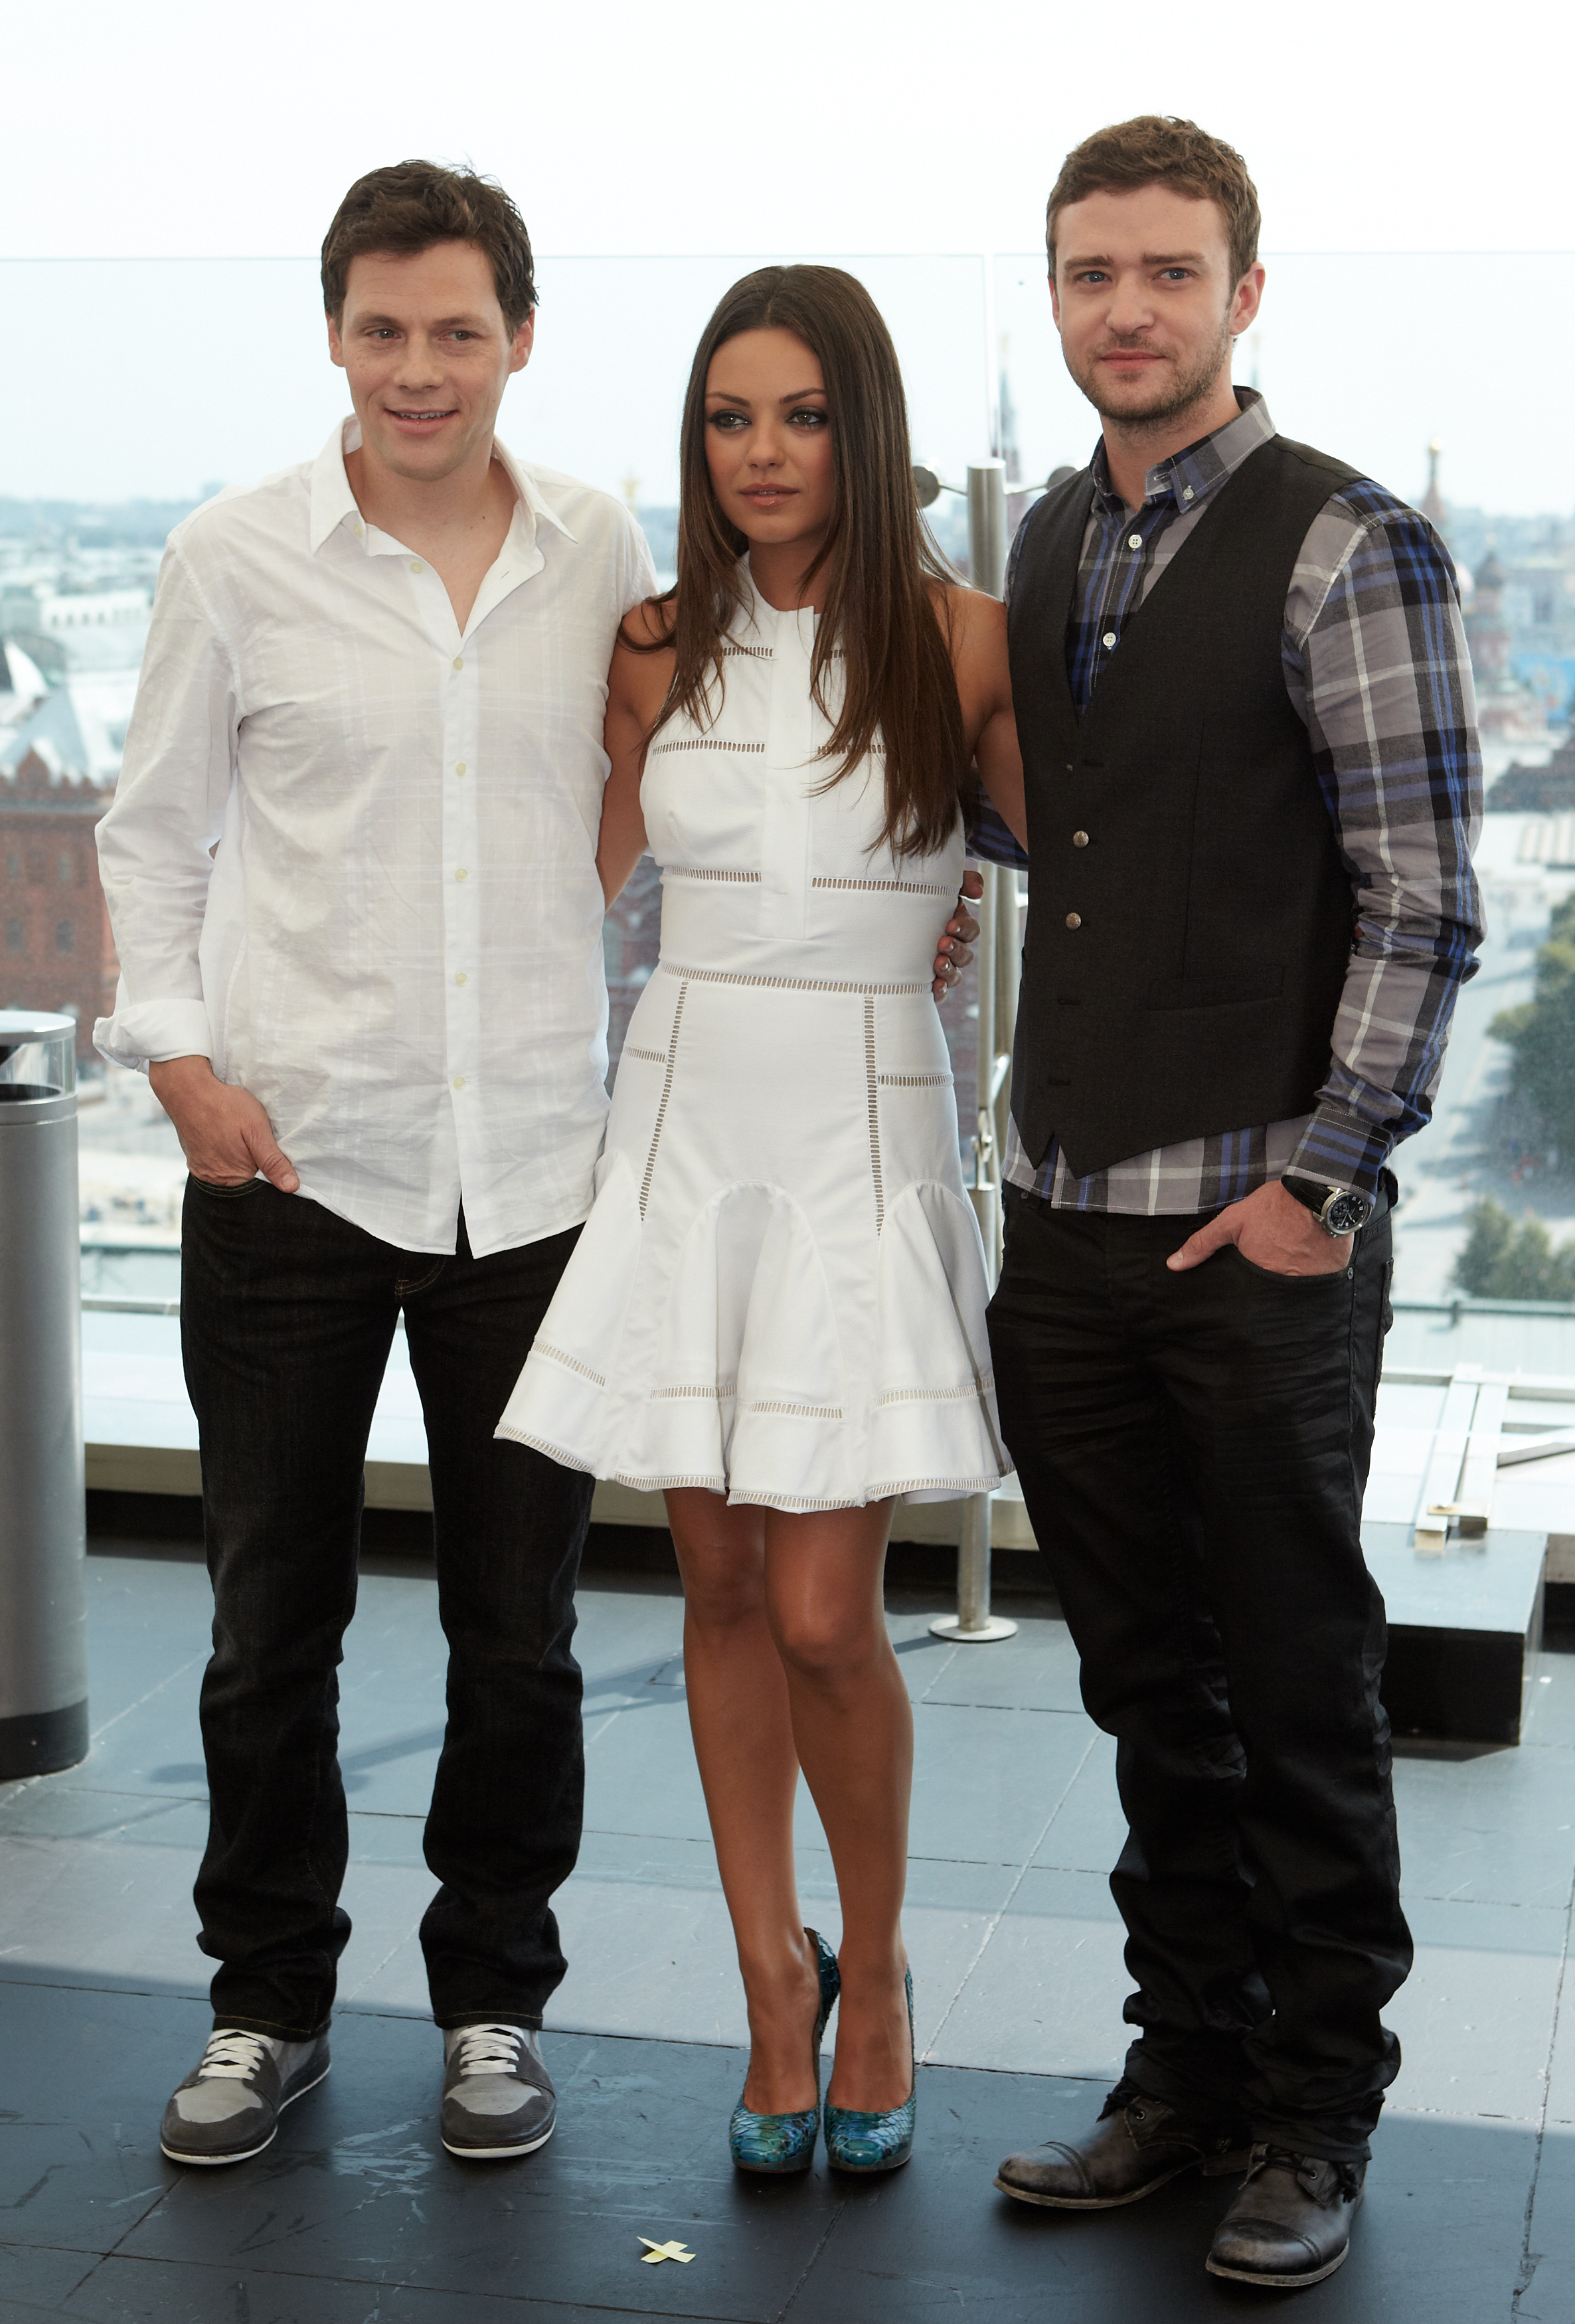 Justin Timberlake, Mila Kunis, and Will Gluck at a Friends With Benefits photo call in Russia.